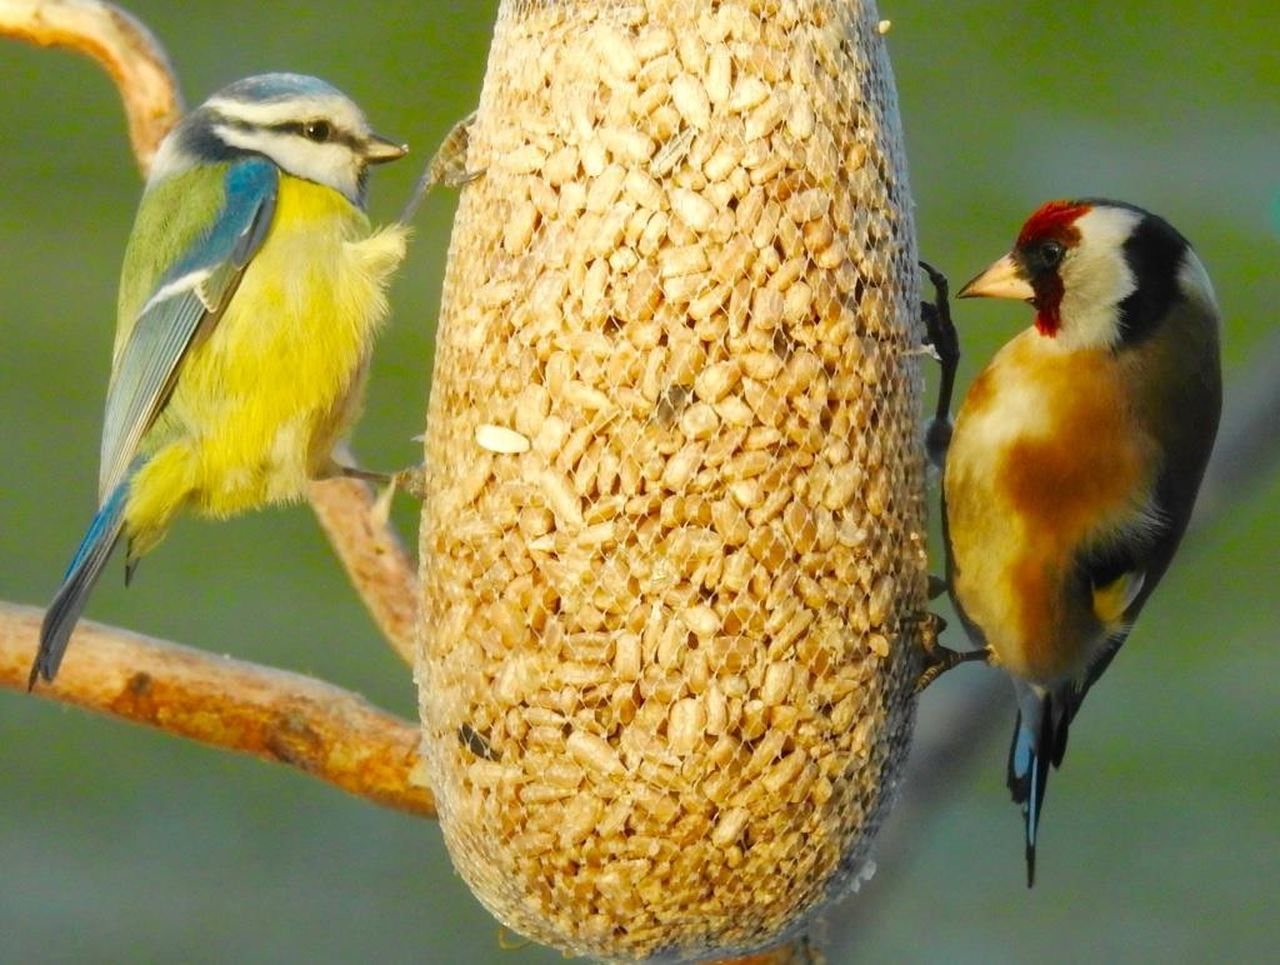 Animal Themes Animal Wildlife Animals In The Wild Bird Bluetit Day Feeding  Food Nature No People One Animal Outdoors Perching Stiglic Tengelic Yellow Yellow Bird Yellow Bird In Green Background